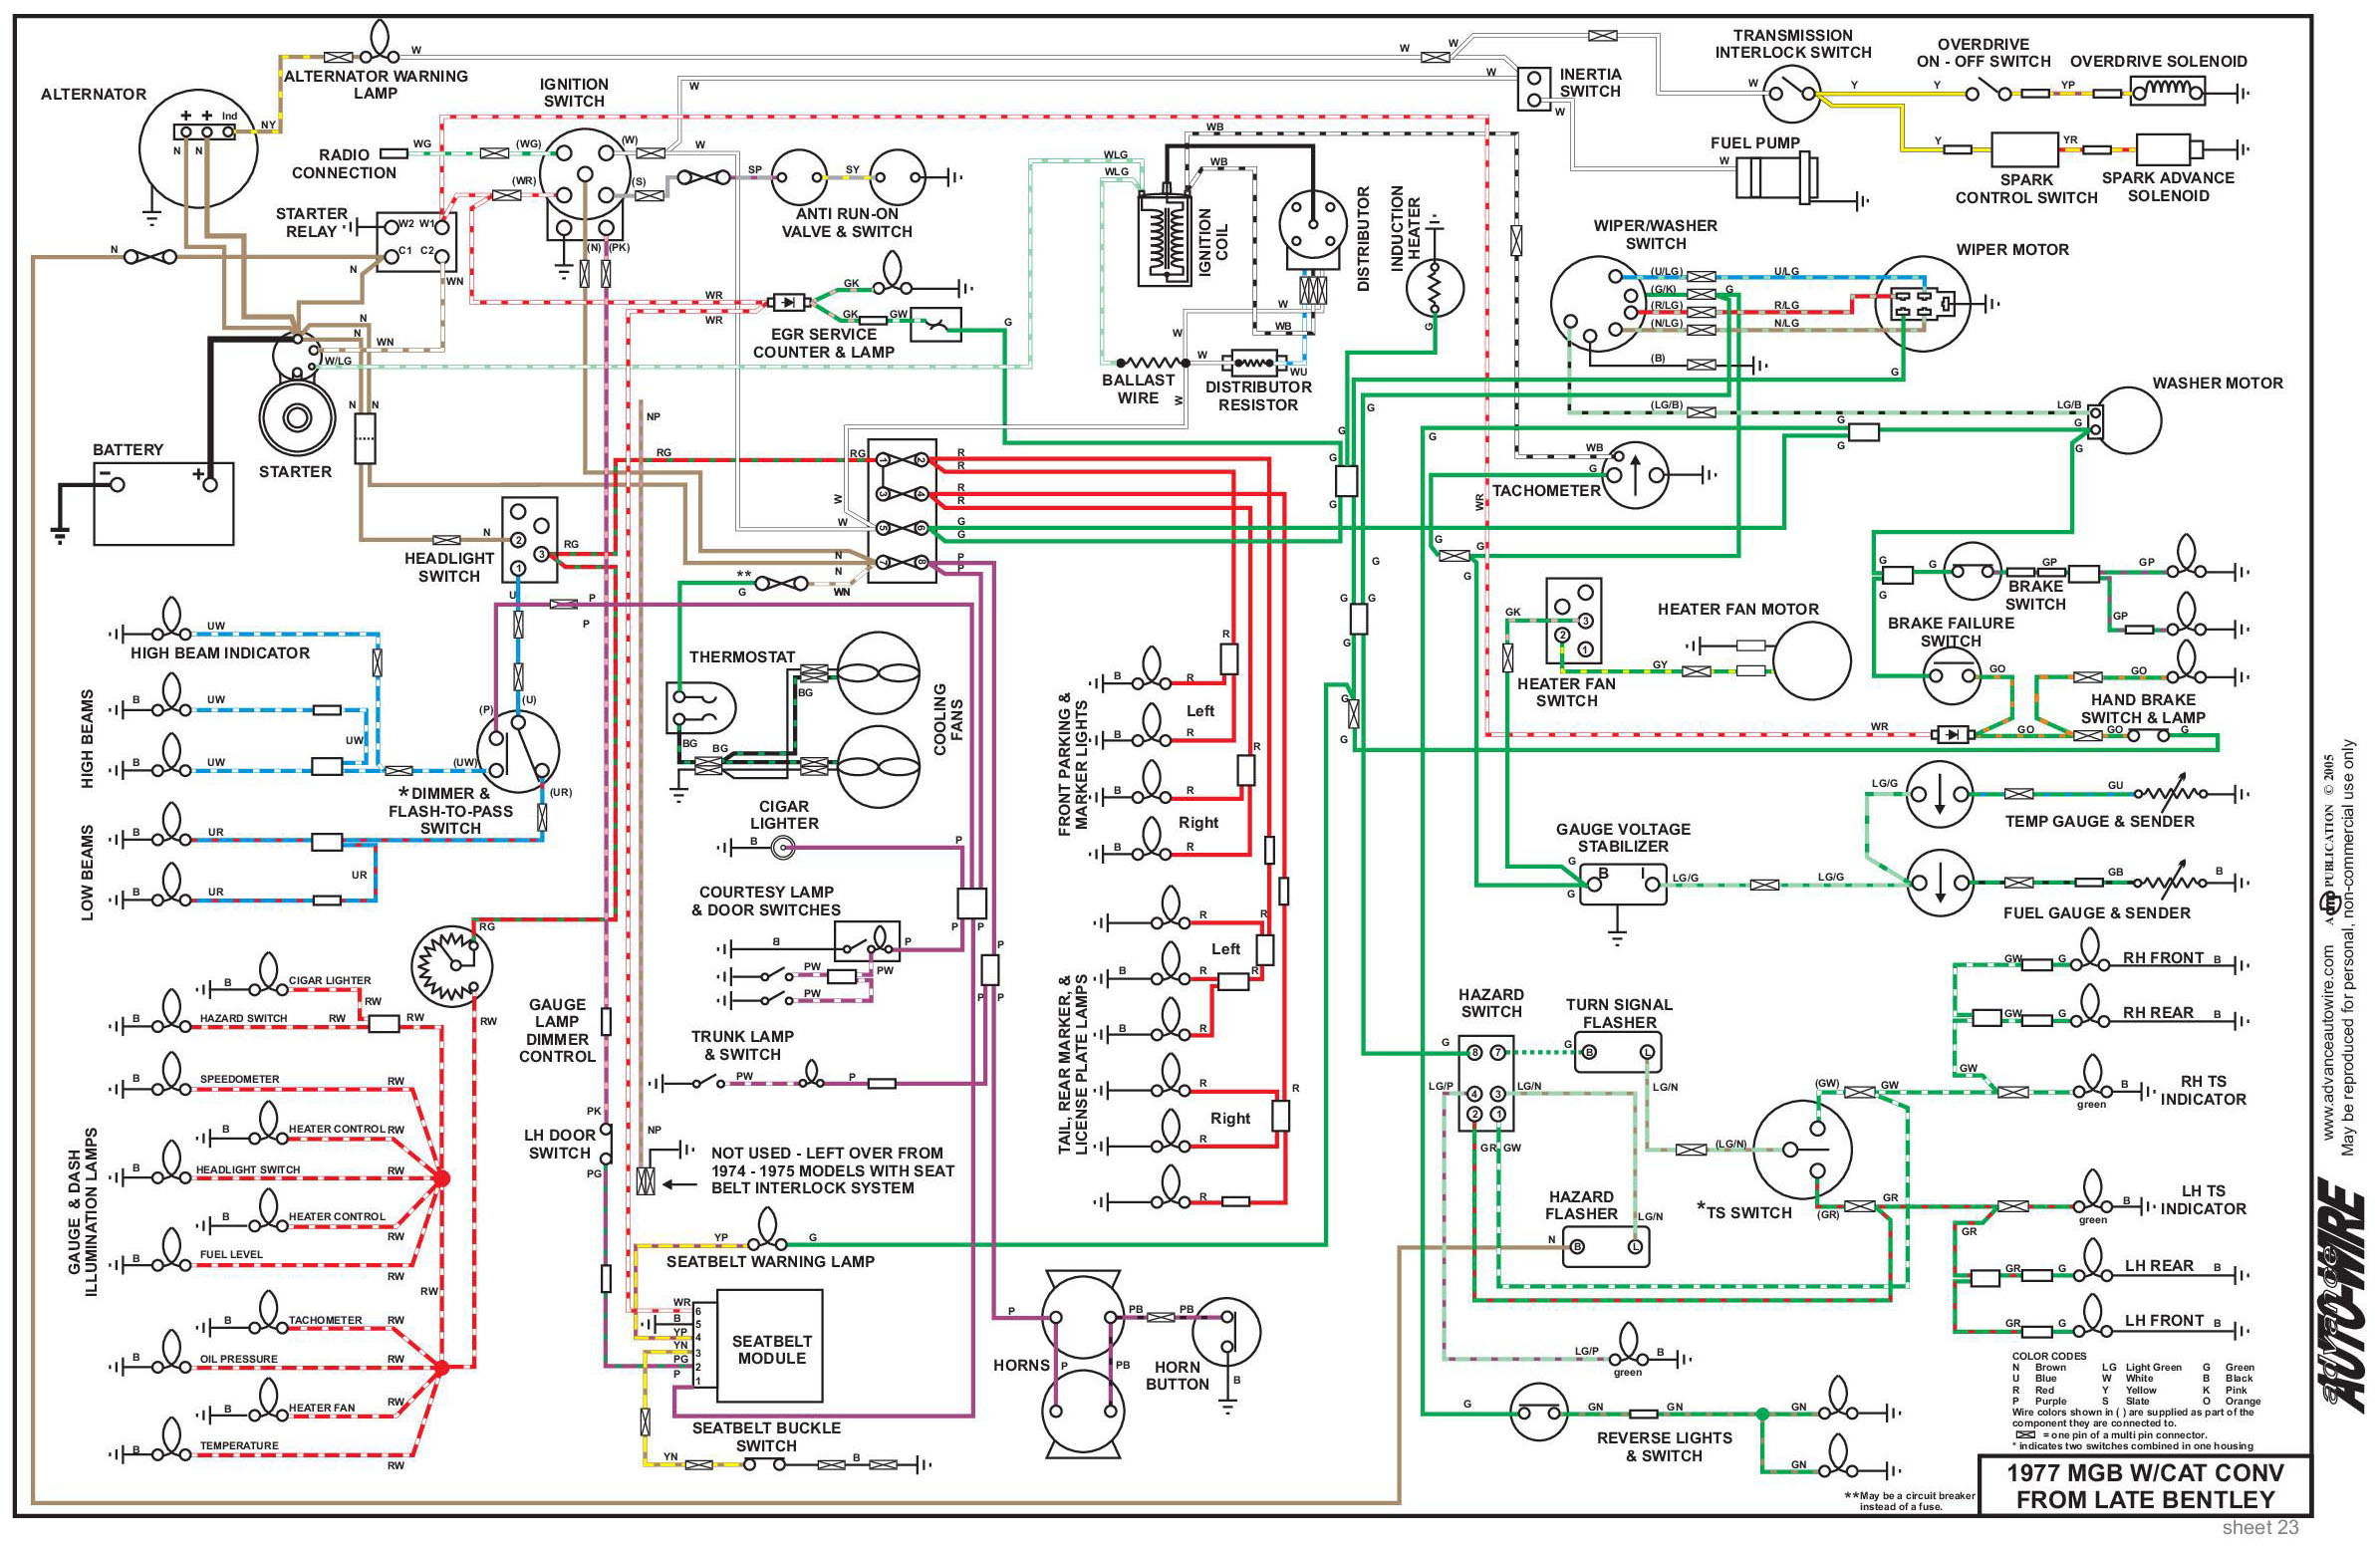 Electrical System Besides Turn Signal Wiring Diagram On Home Lighting Circuit 1977 Mgb W Cat